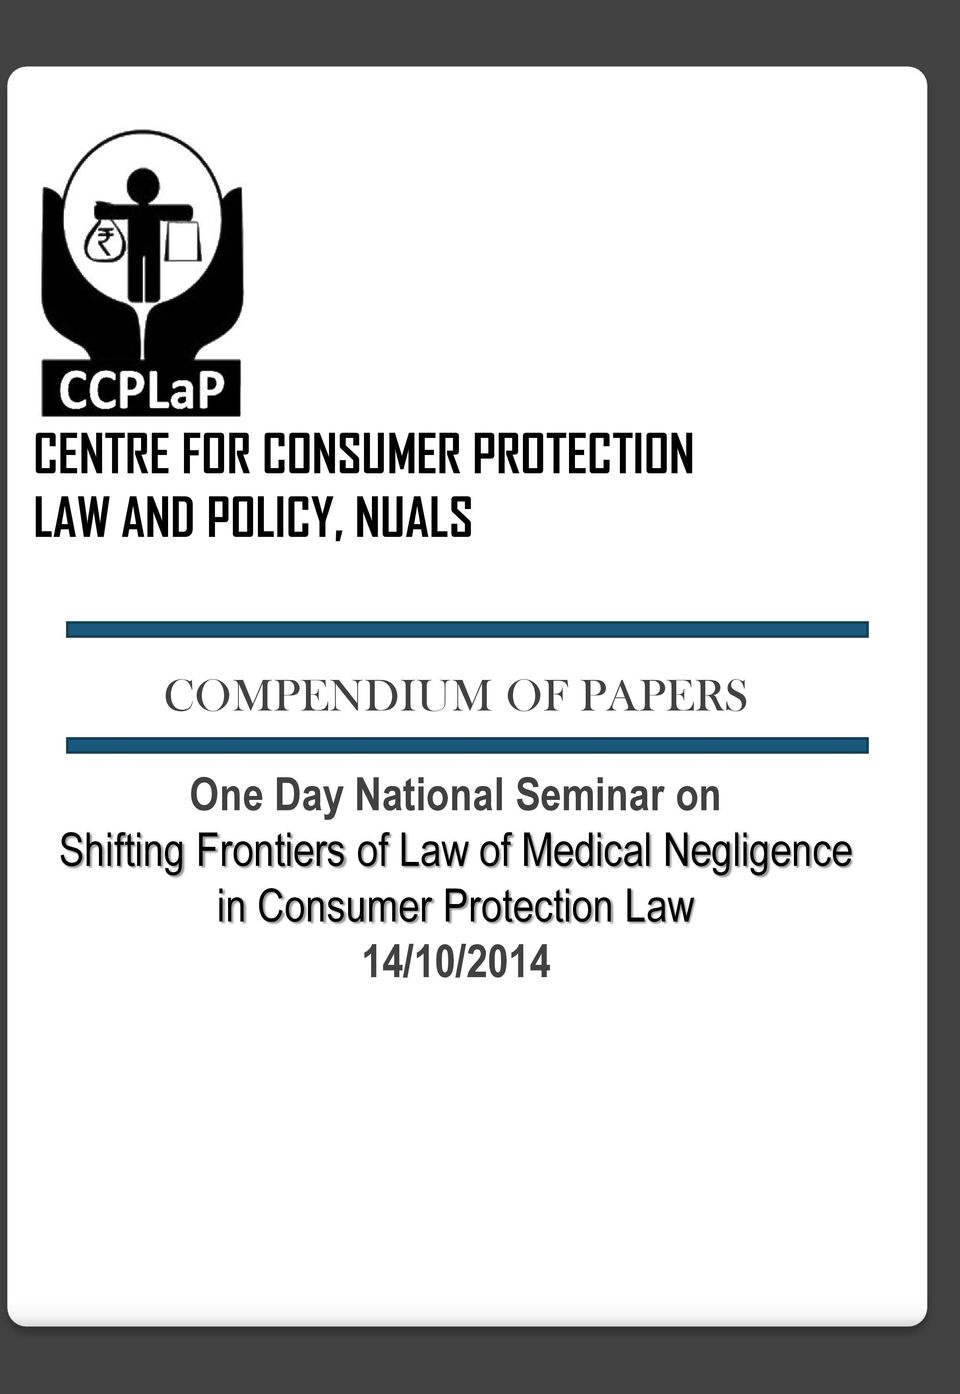 Seminar on Shifting Frontiers of Law of